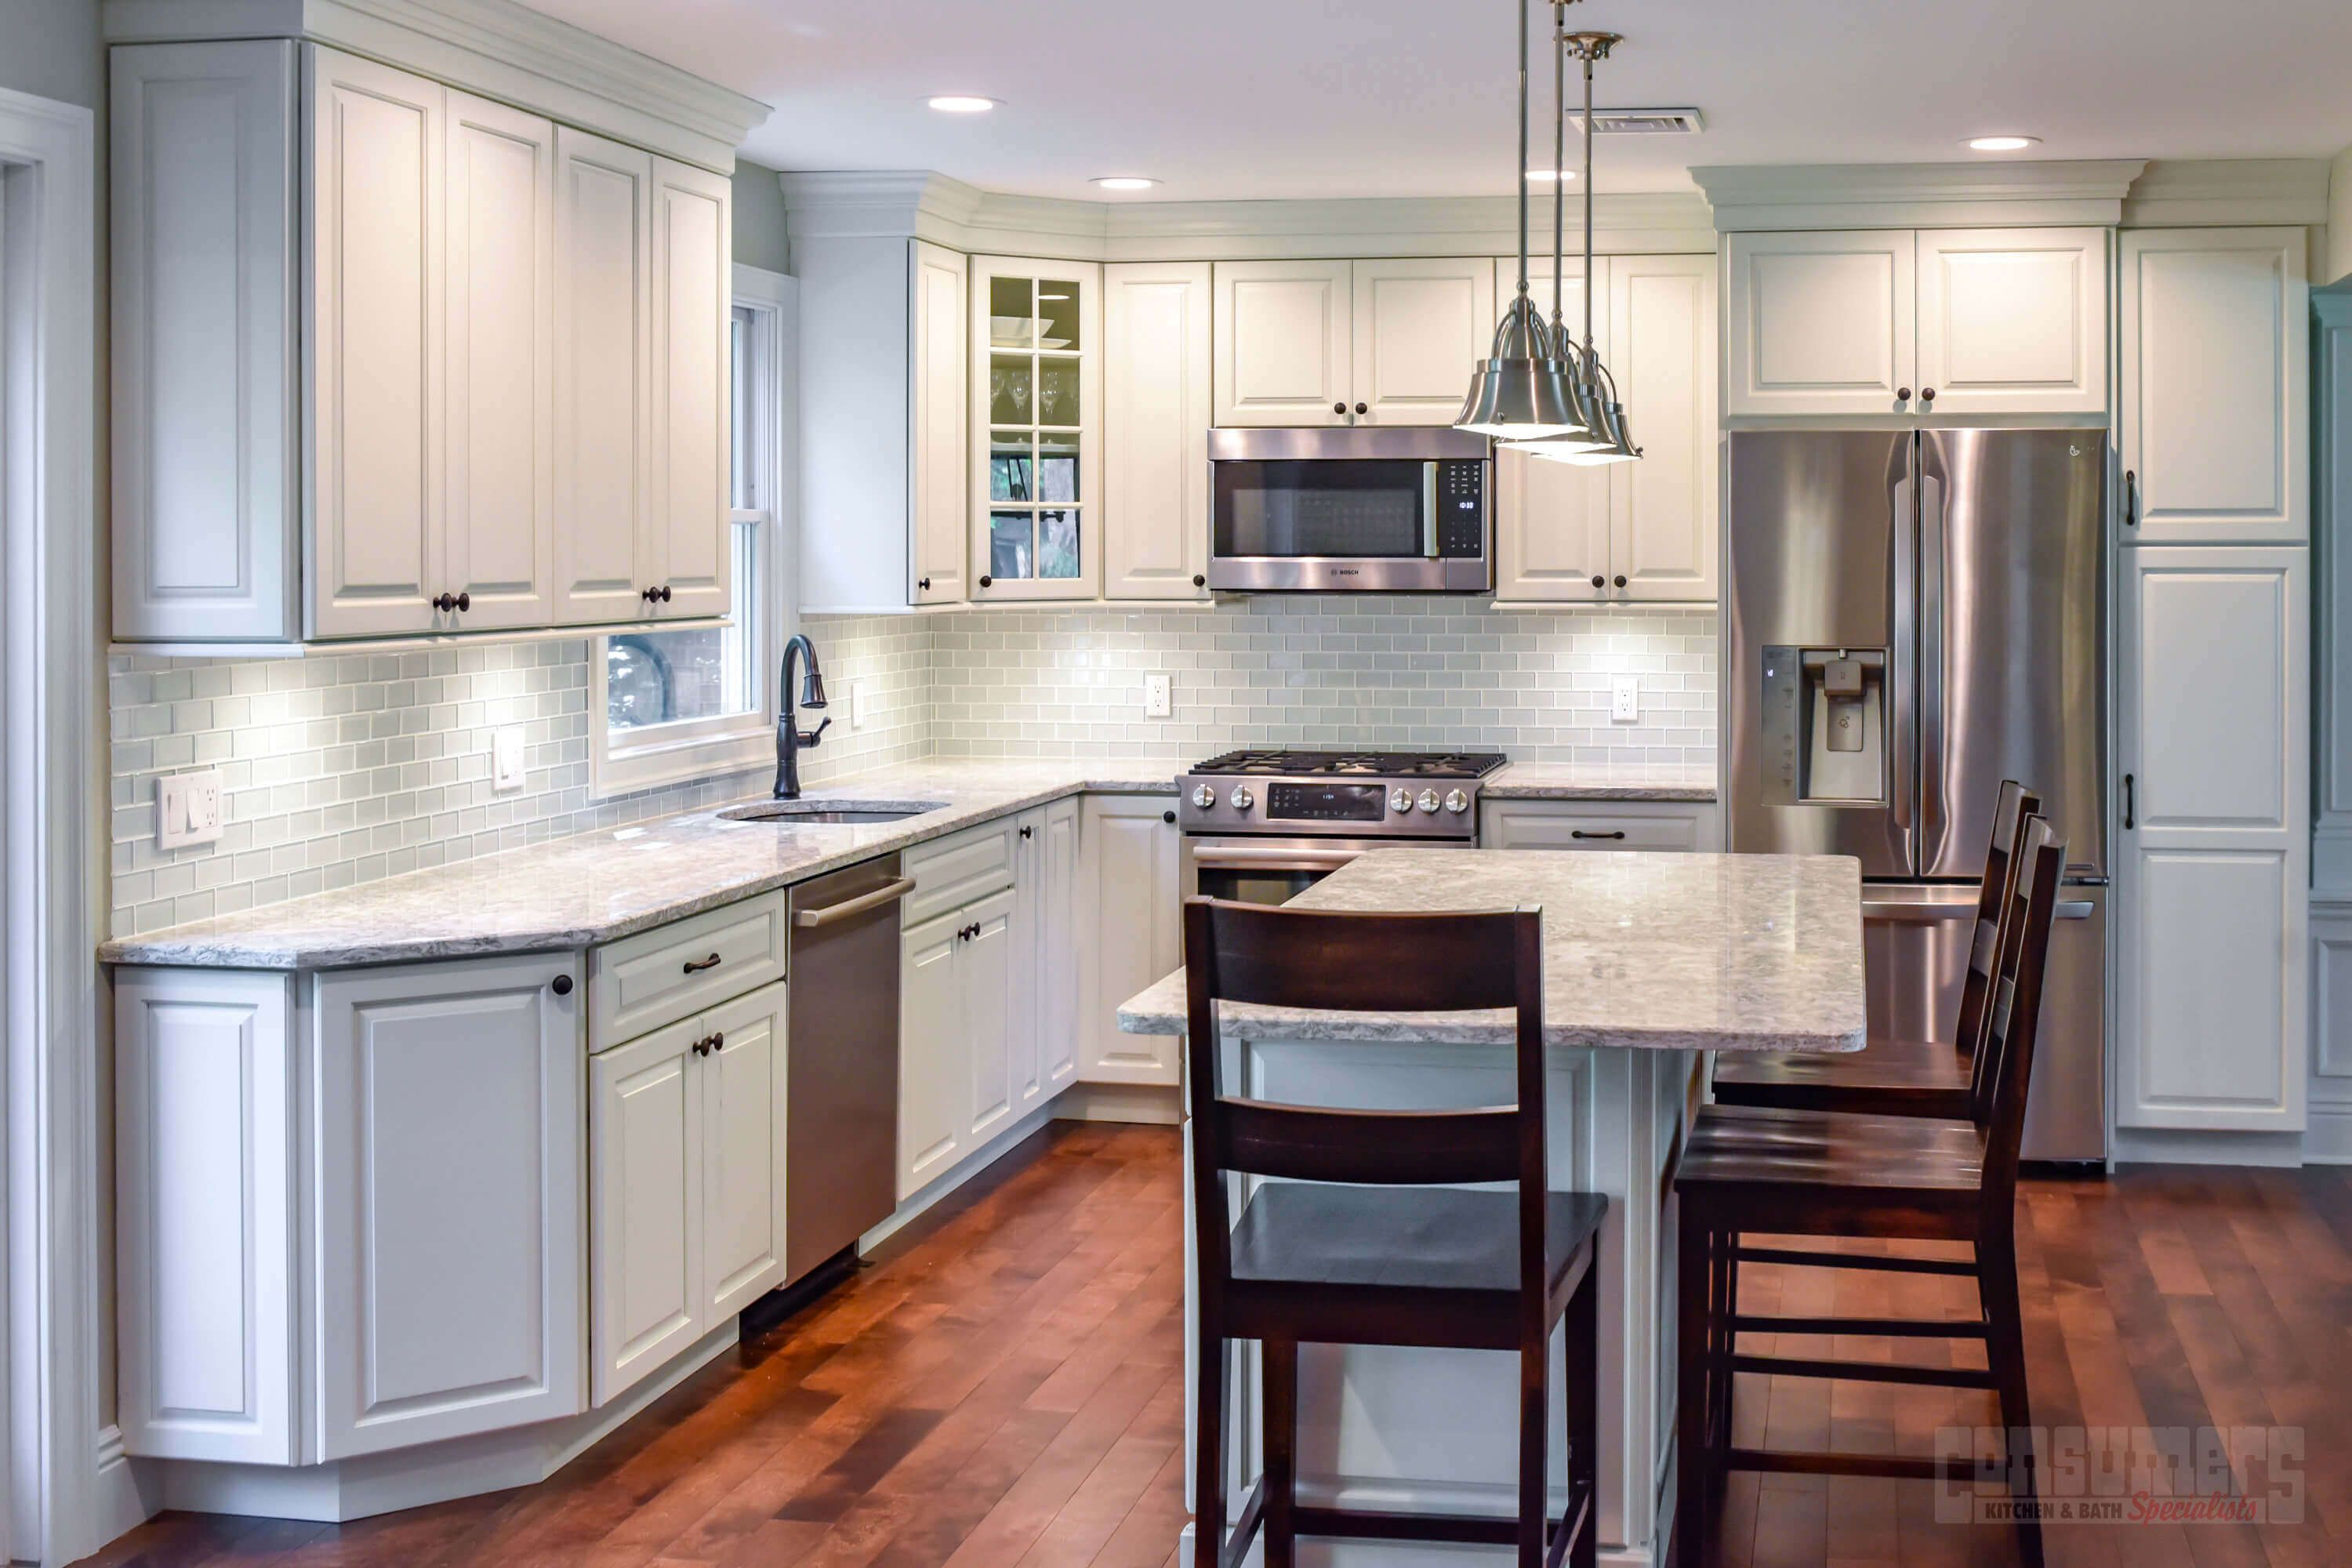 Pin By Consumers Kitchens Baths On Sugar White Huntington Station Kitchen Models Kitchen Design Buy Kitchen